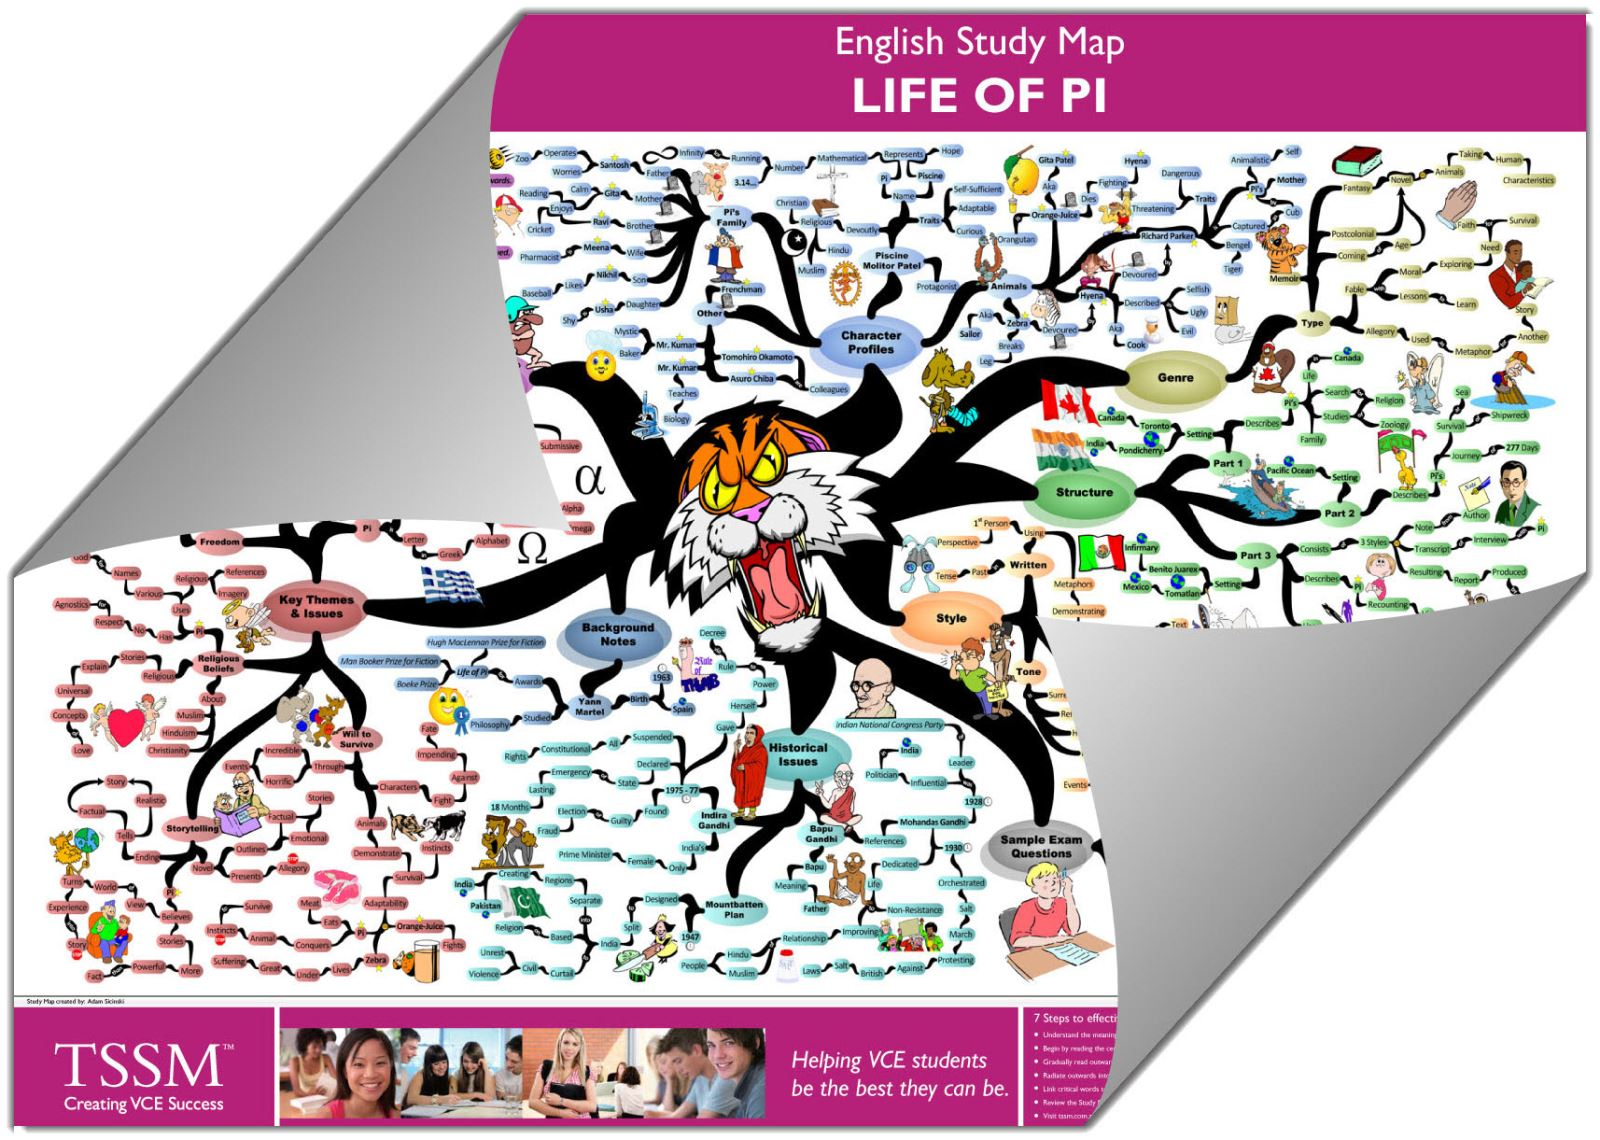 life of pi essays Life of pi is a novel by yann martel life of pi study guide contains a biography of author yann martel, literature essays, quiz questions, major themes, characters, and a full summary and analysis.